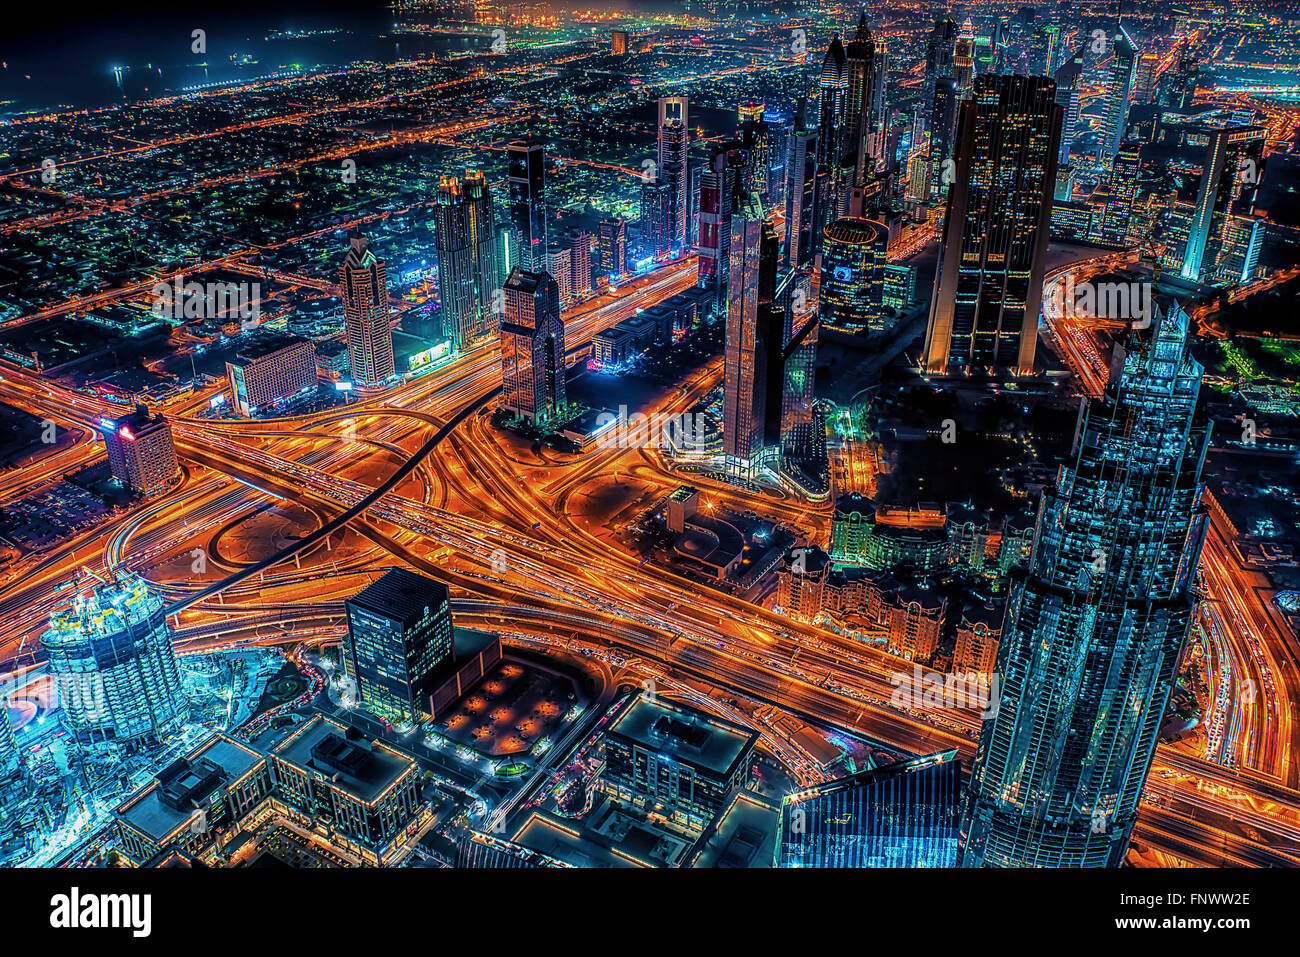 Dubai city at night - Stock Image